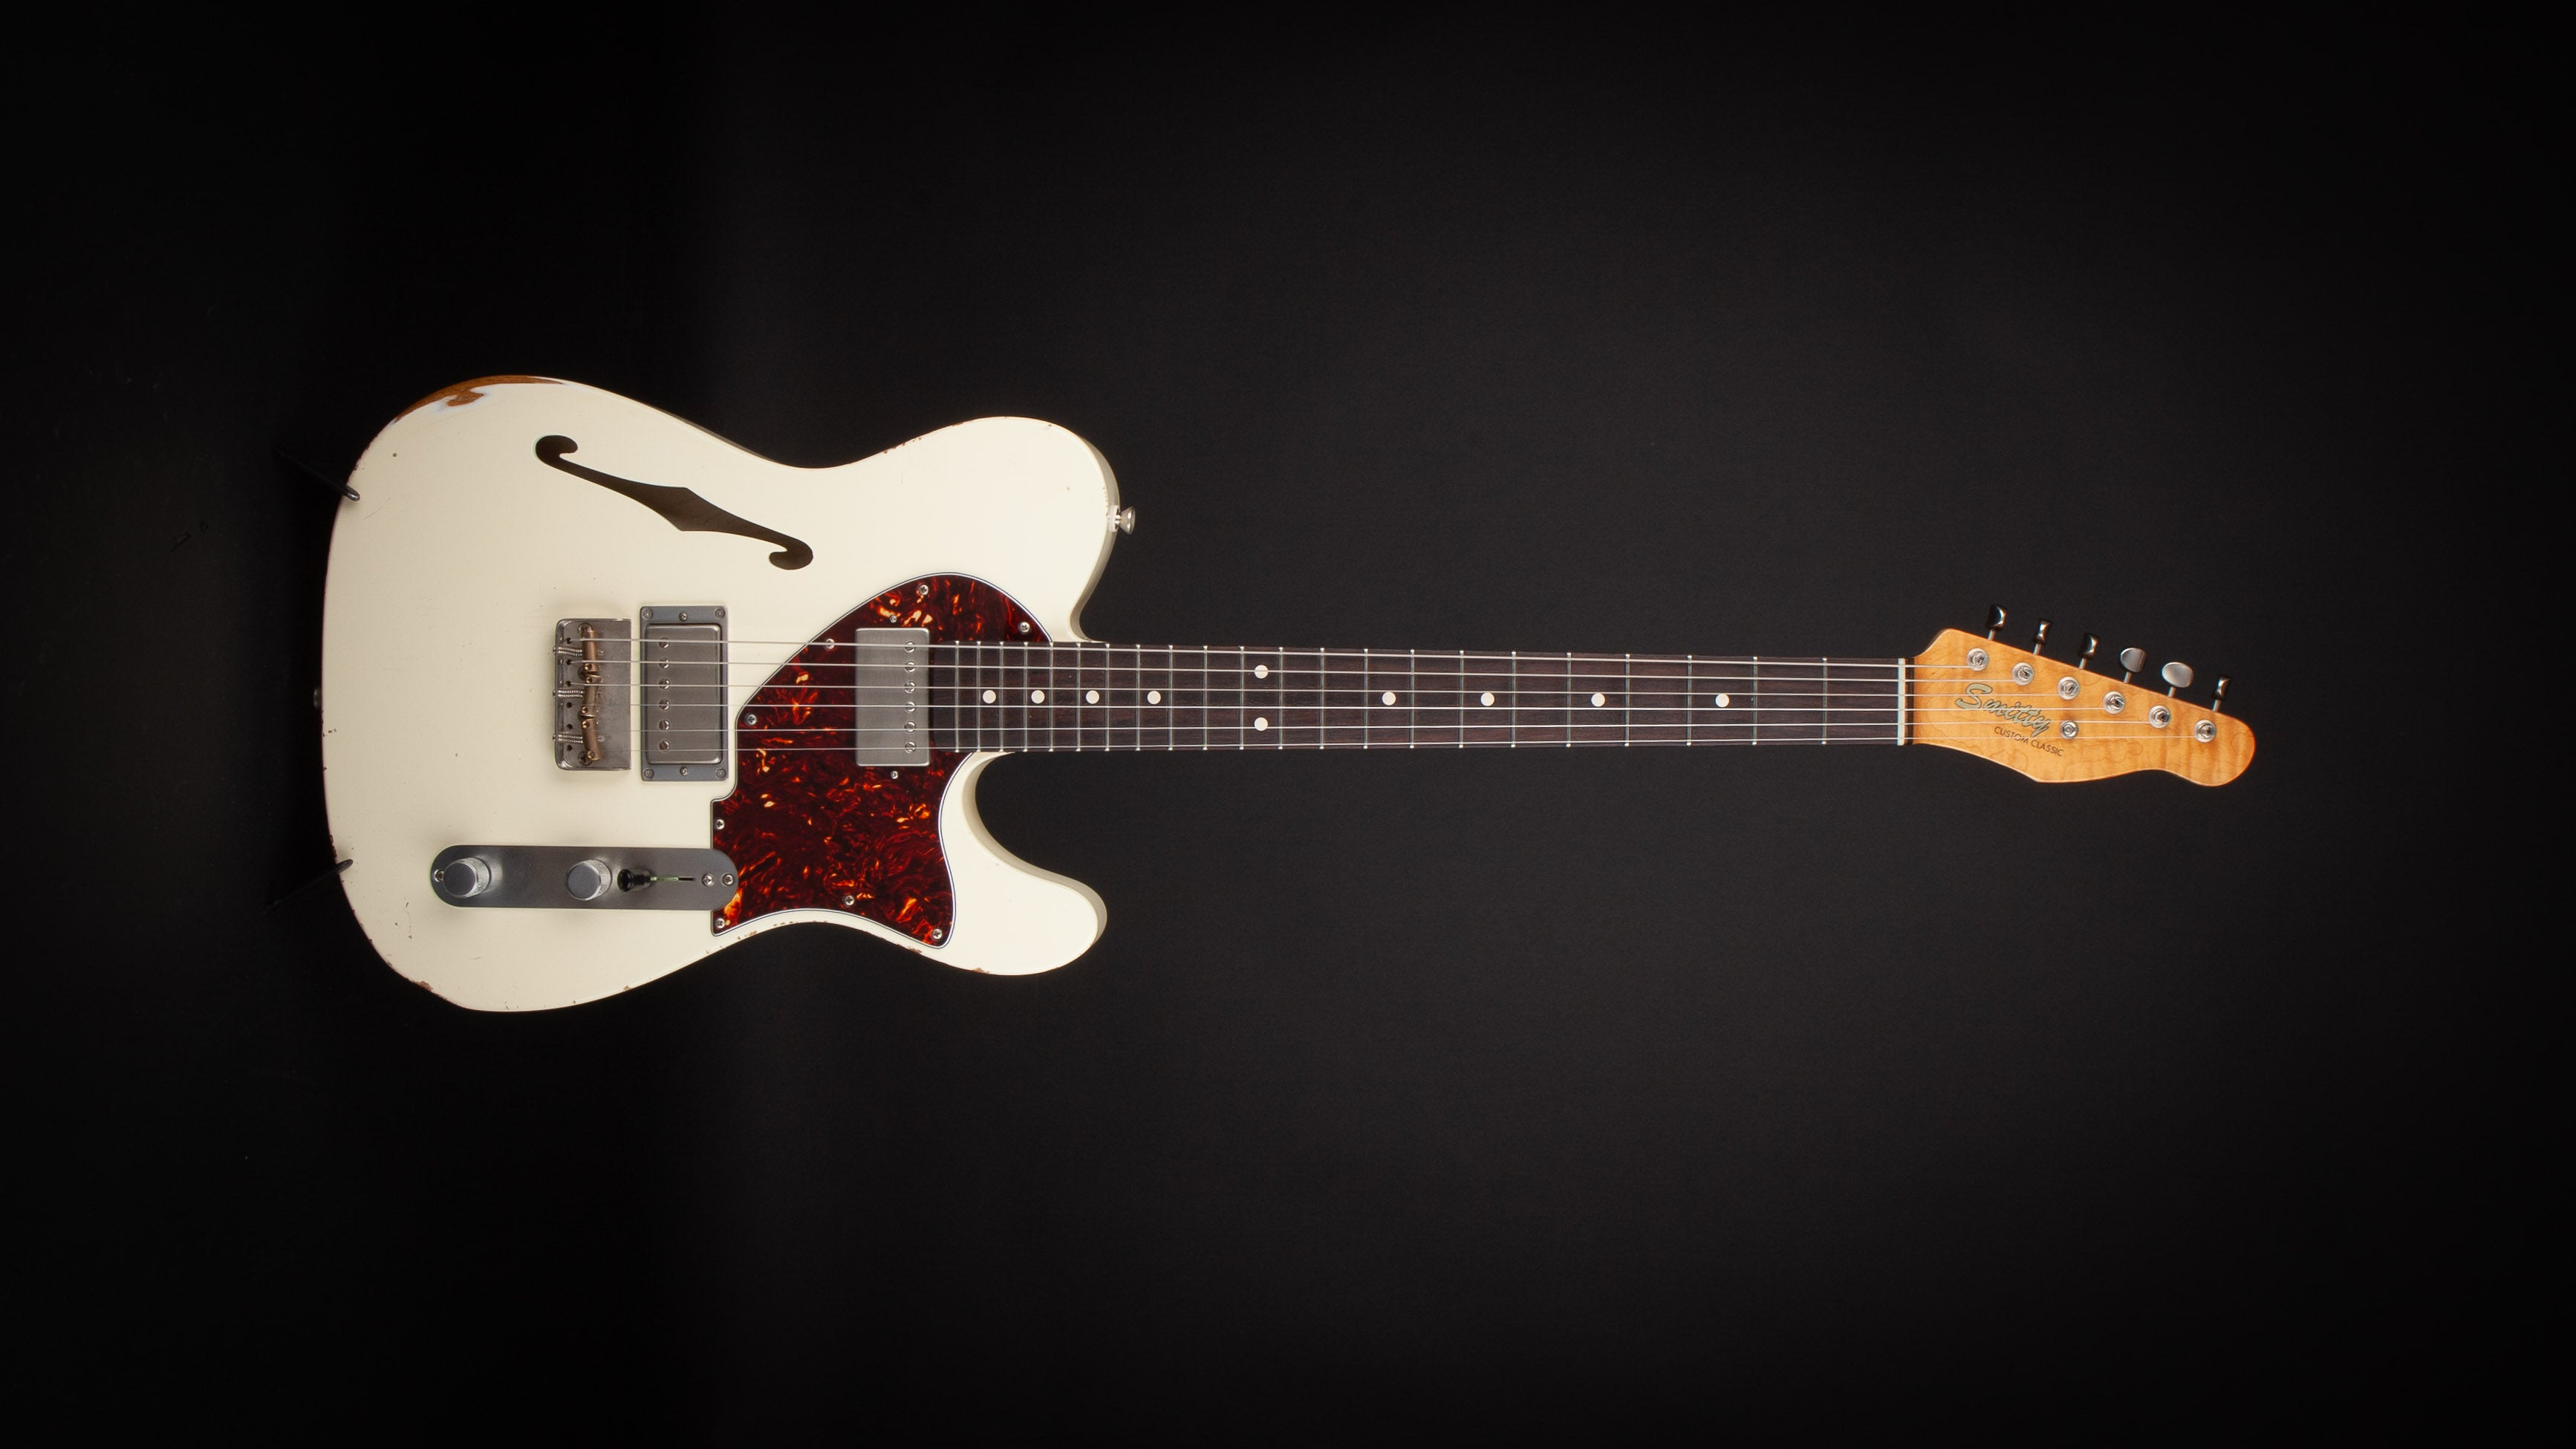 Smitty Guitars: T Style Thinline Olympic White with Mastergrade Roasted Flame Maple Neck